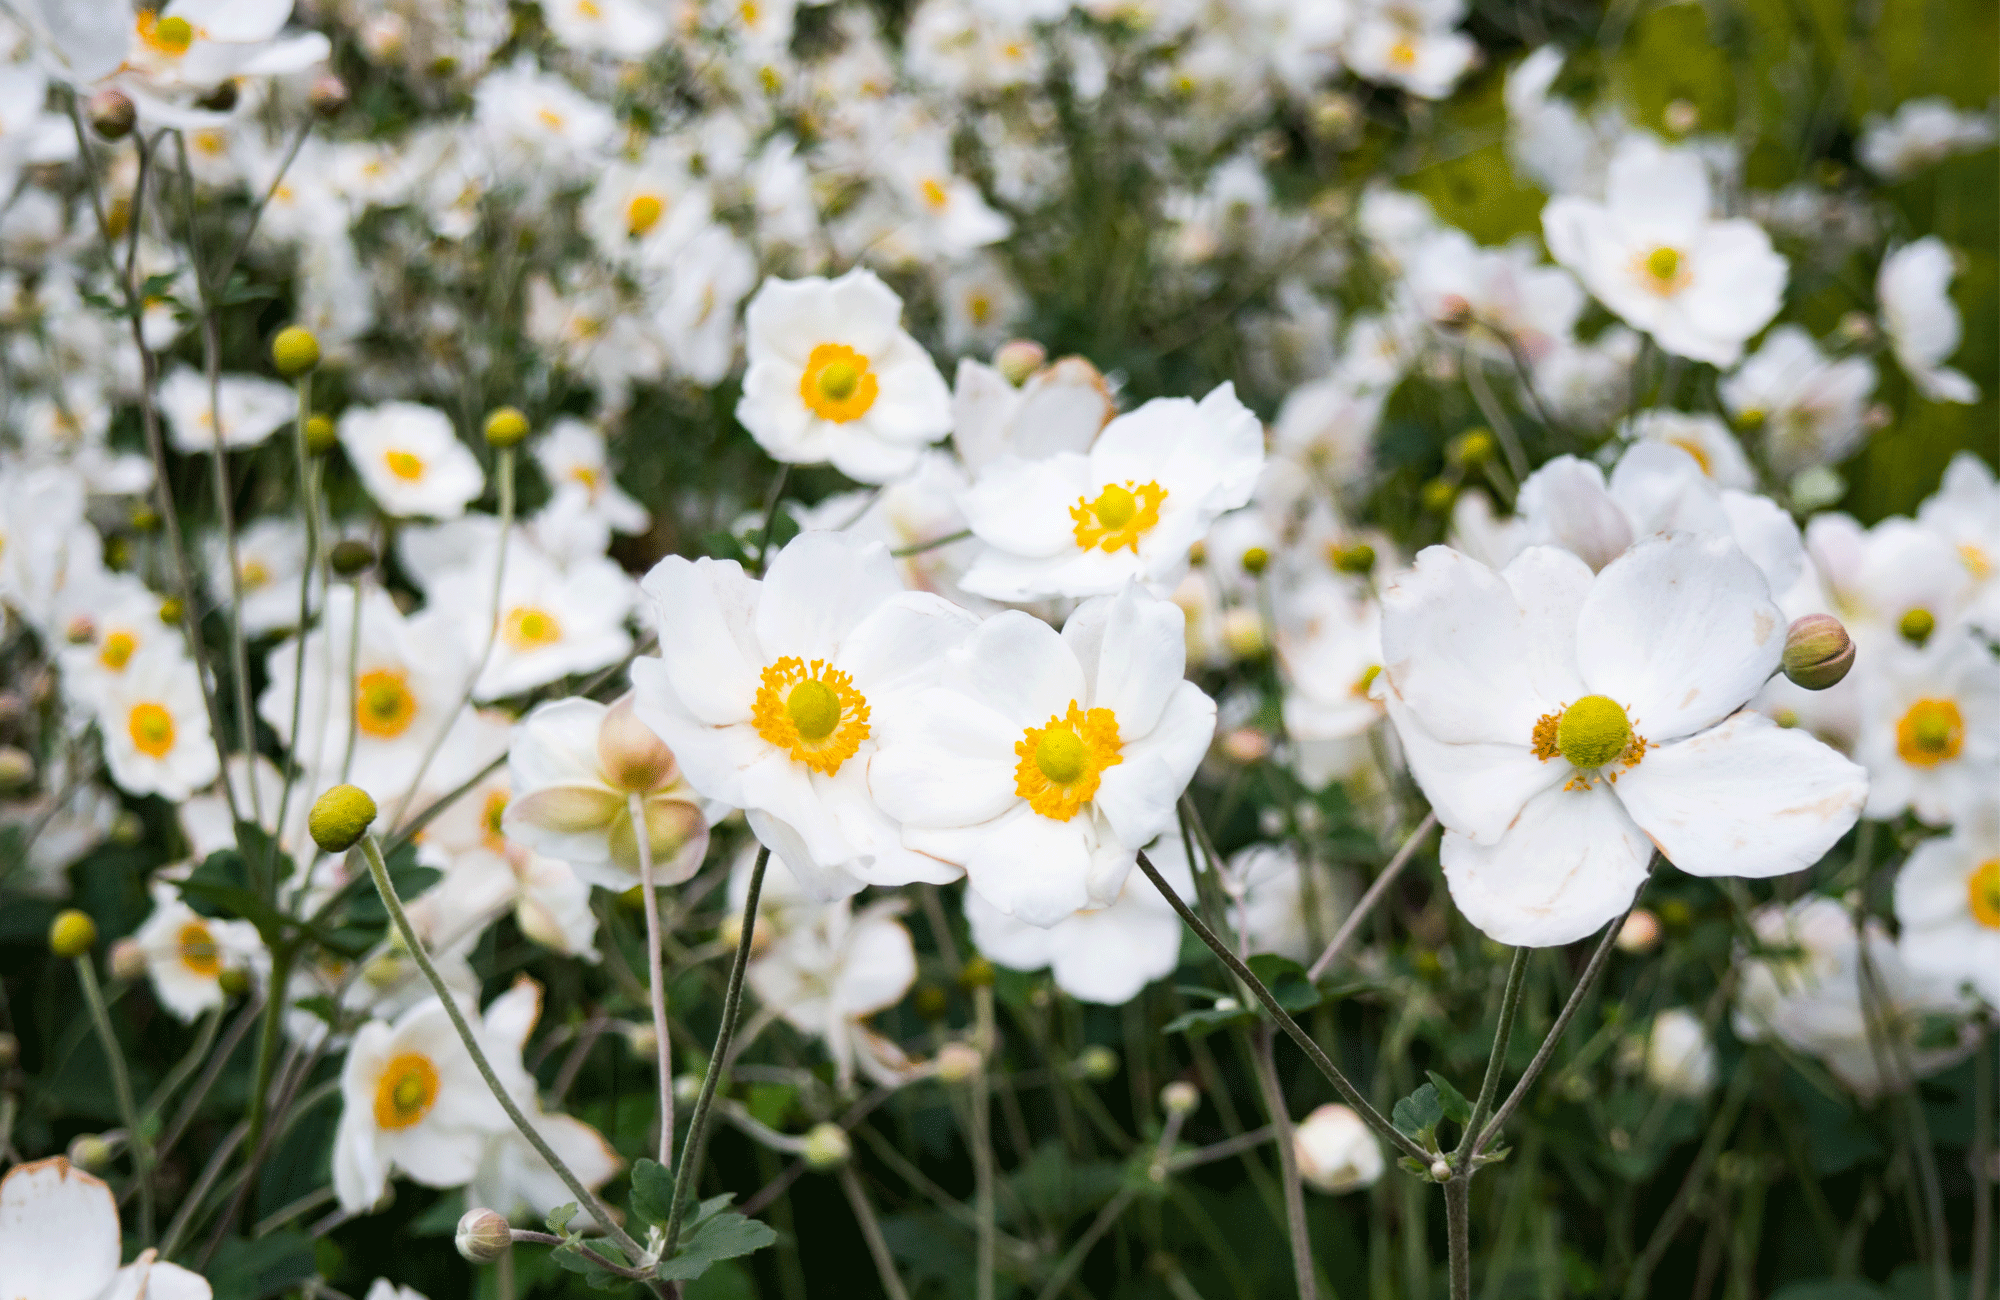 A field of white anemone flowers